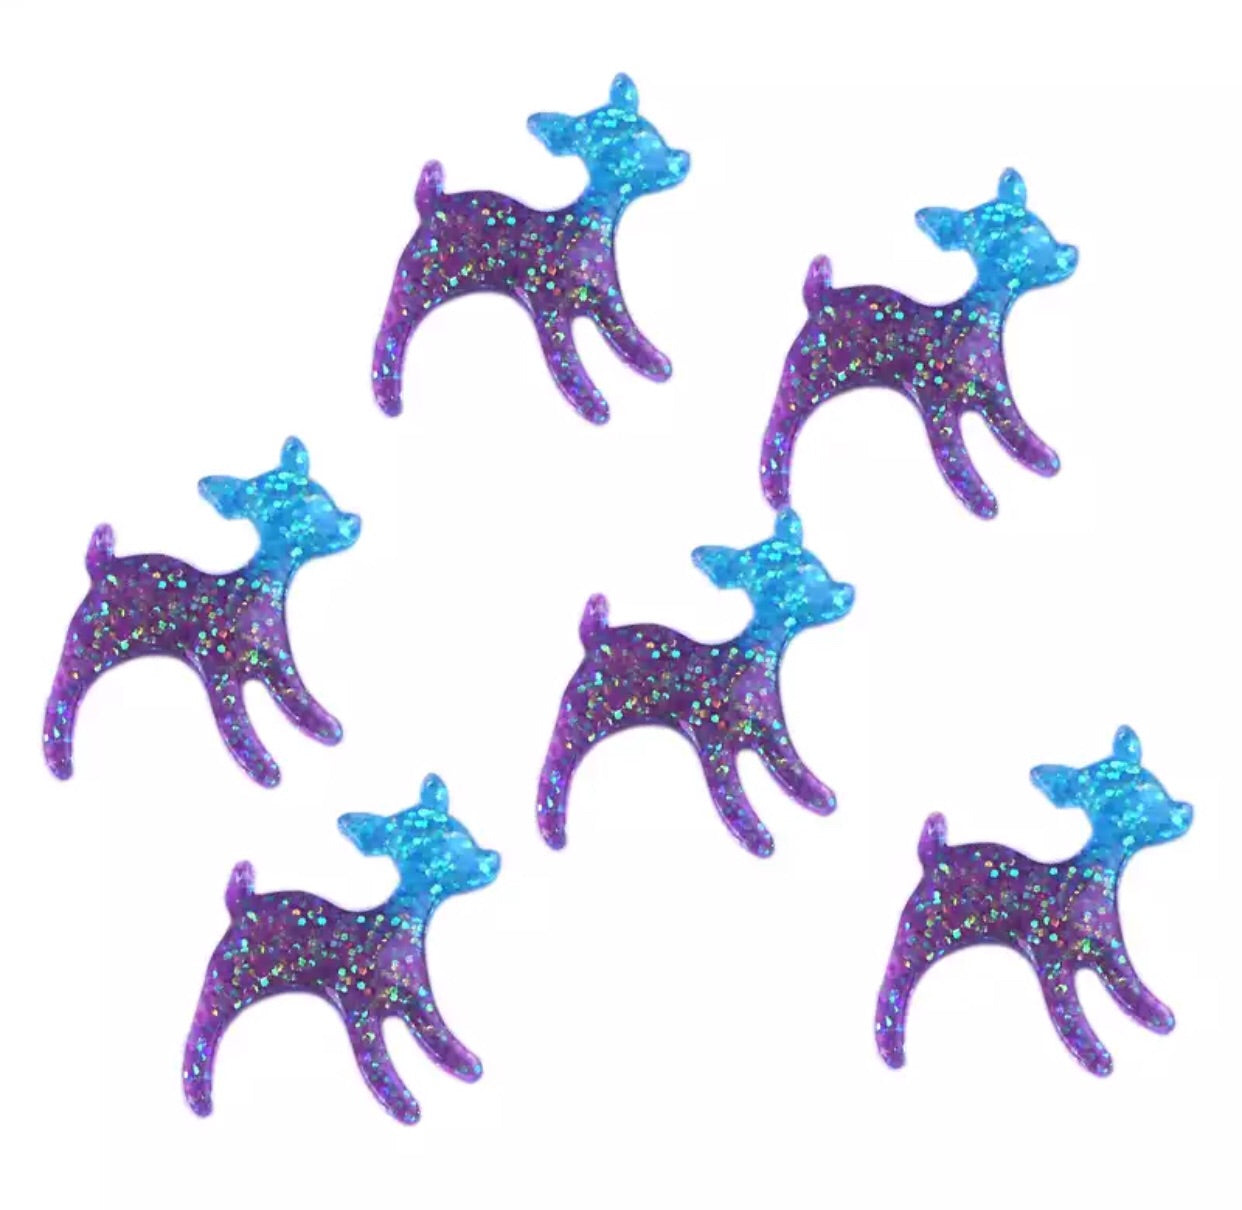 Deer resin - glitter blue and purple - shabbyflowers.com